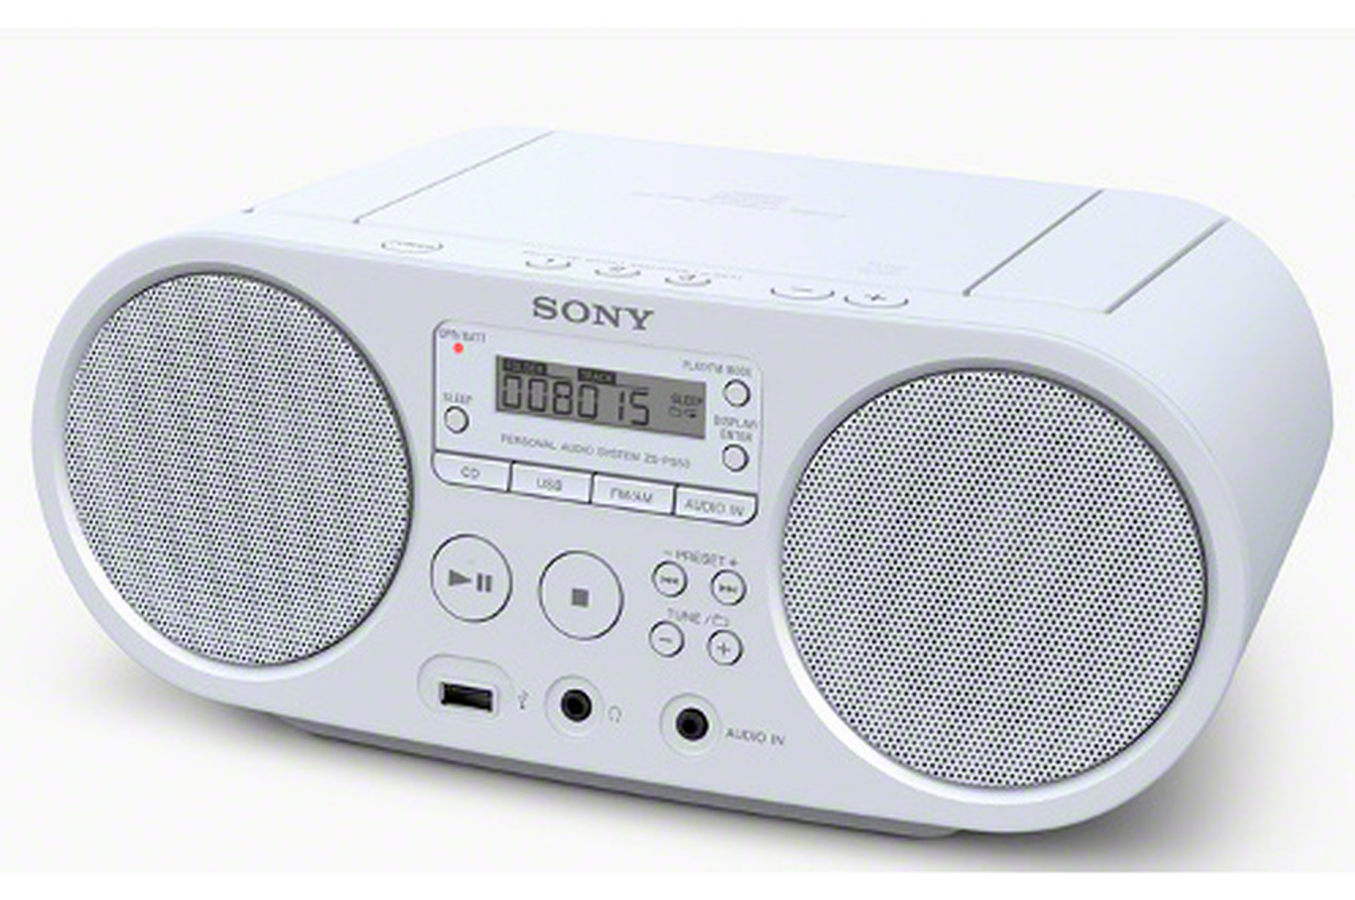 Radio cd radio k7 cd sony zs ps50w blanc 4101537 darty - Poste radio pour cuisine ...